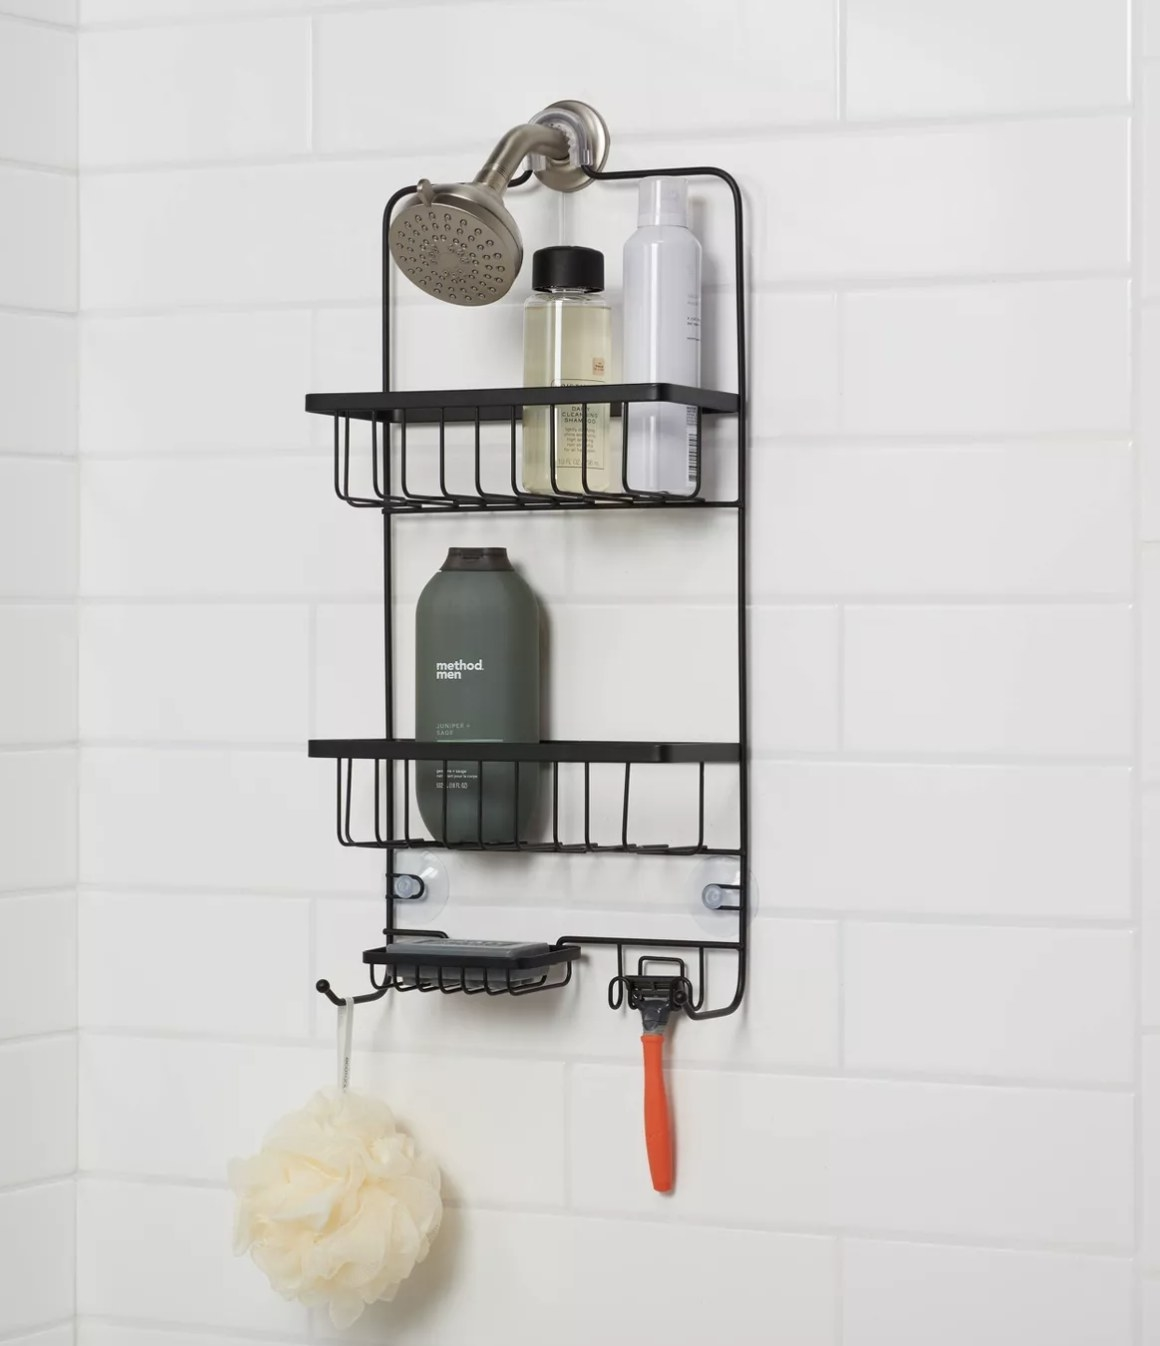 Shower caddy holds soaps and other essentials